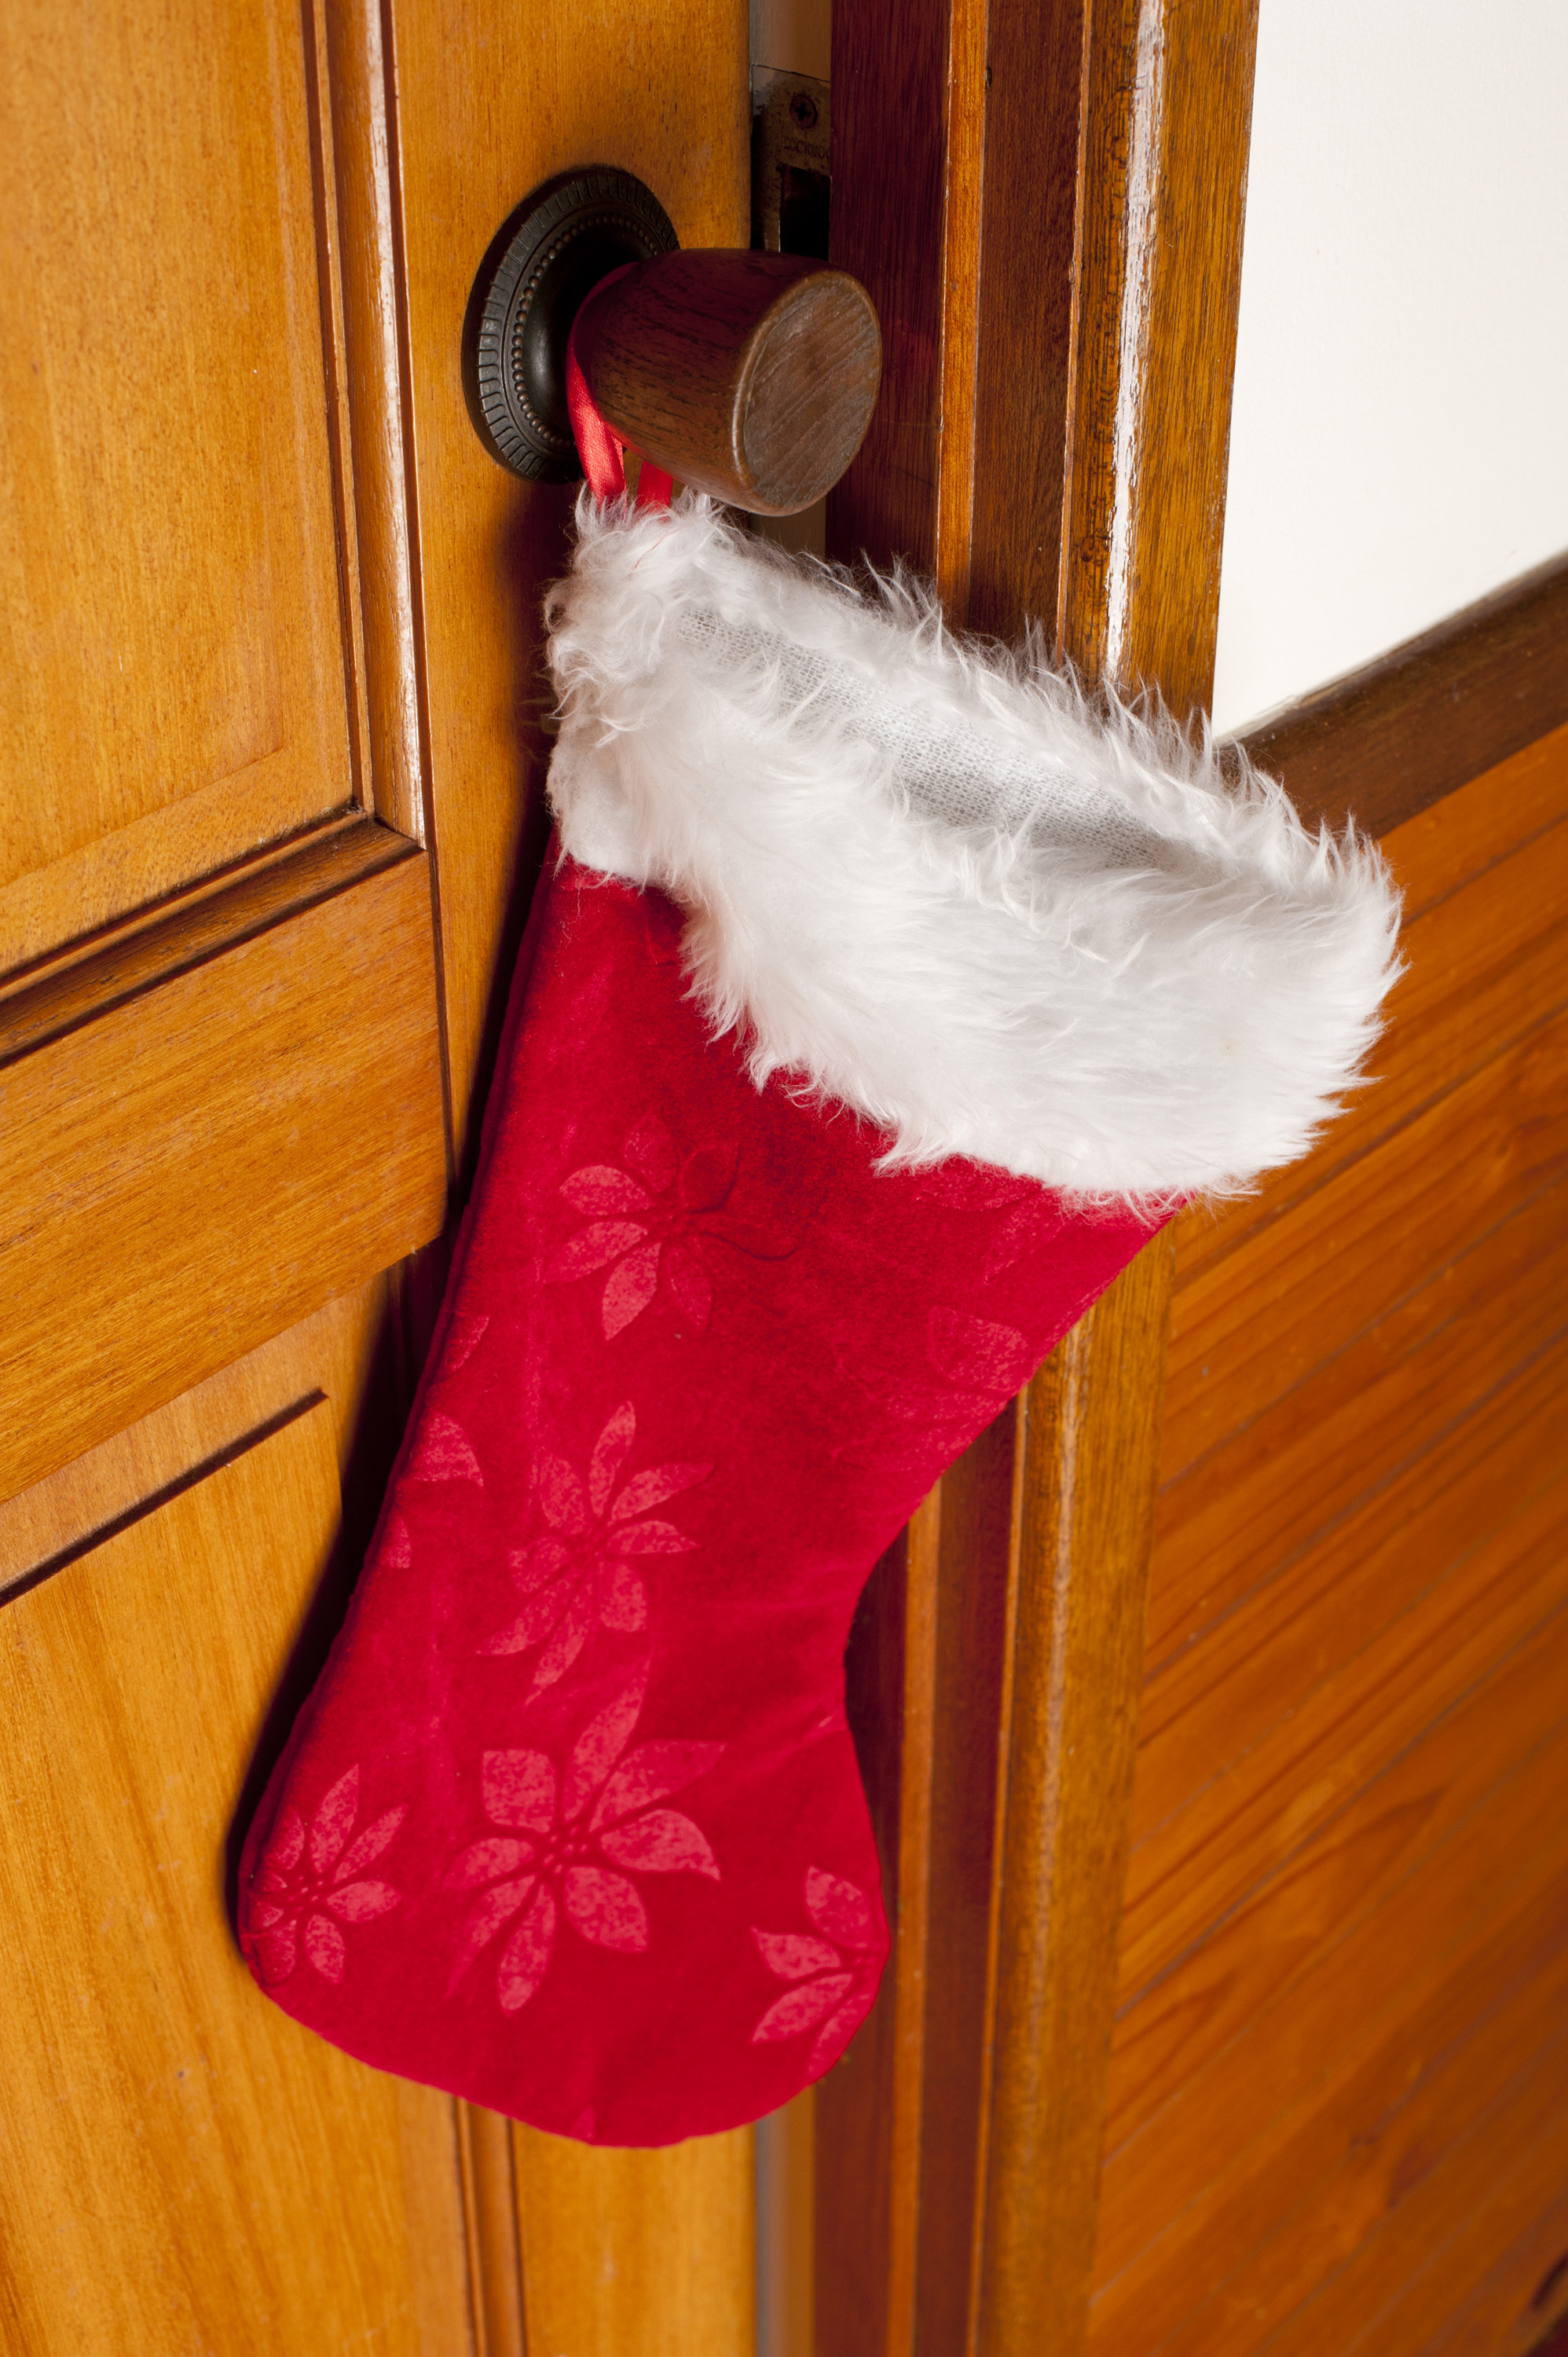 Free Stock Photo 13149 Colorful Red Christmas Stocking